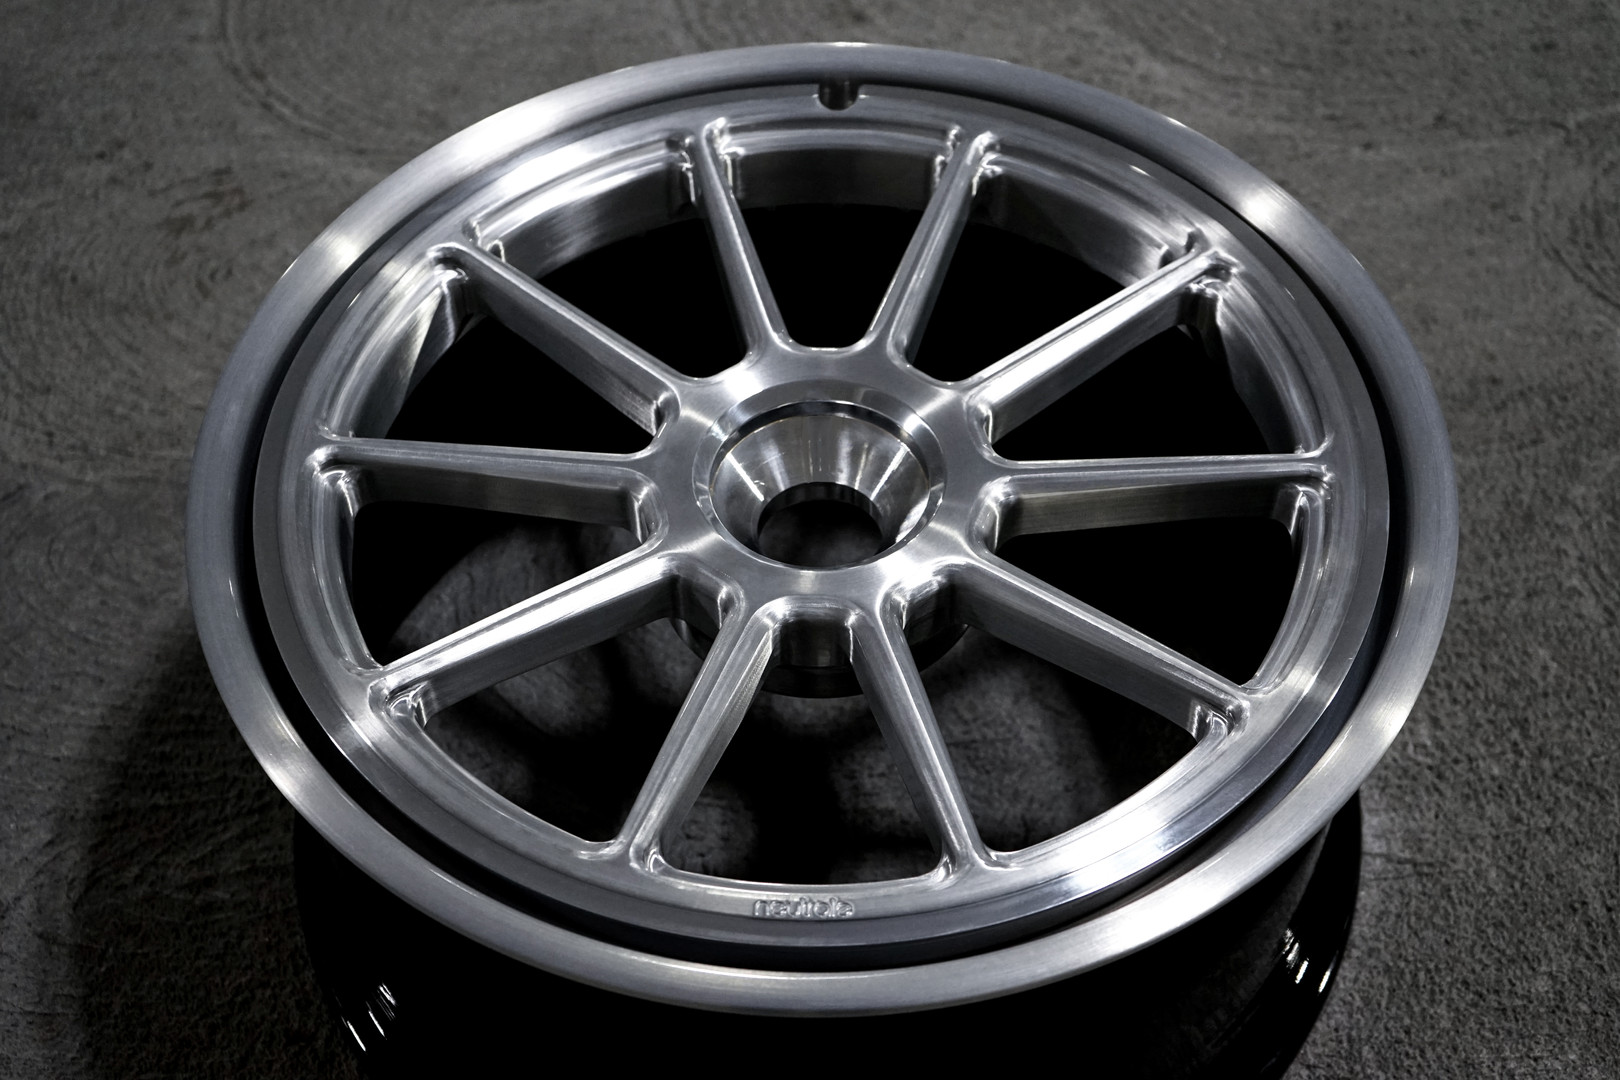 MS10 PROGRESSIV 20X9.5 CENTER LOCK